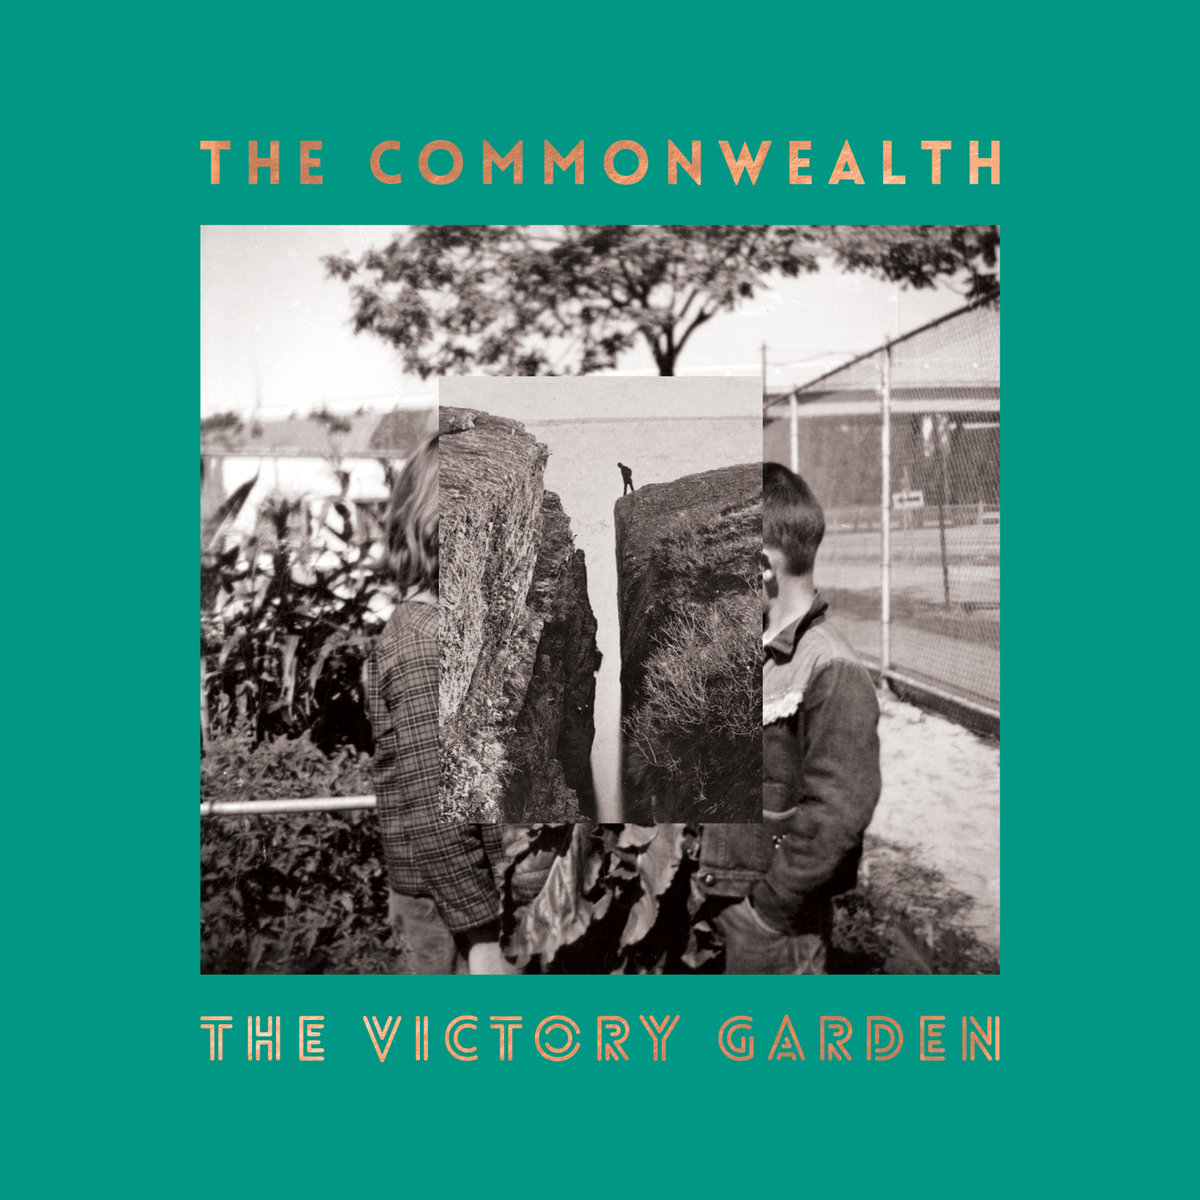 the victory garden by the commonwealth - The Victory Garden